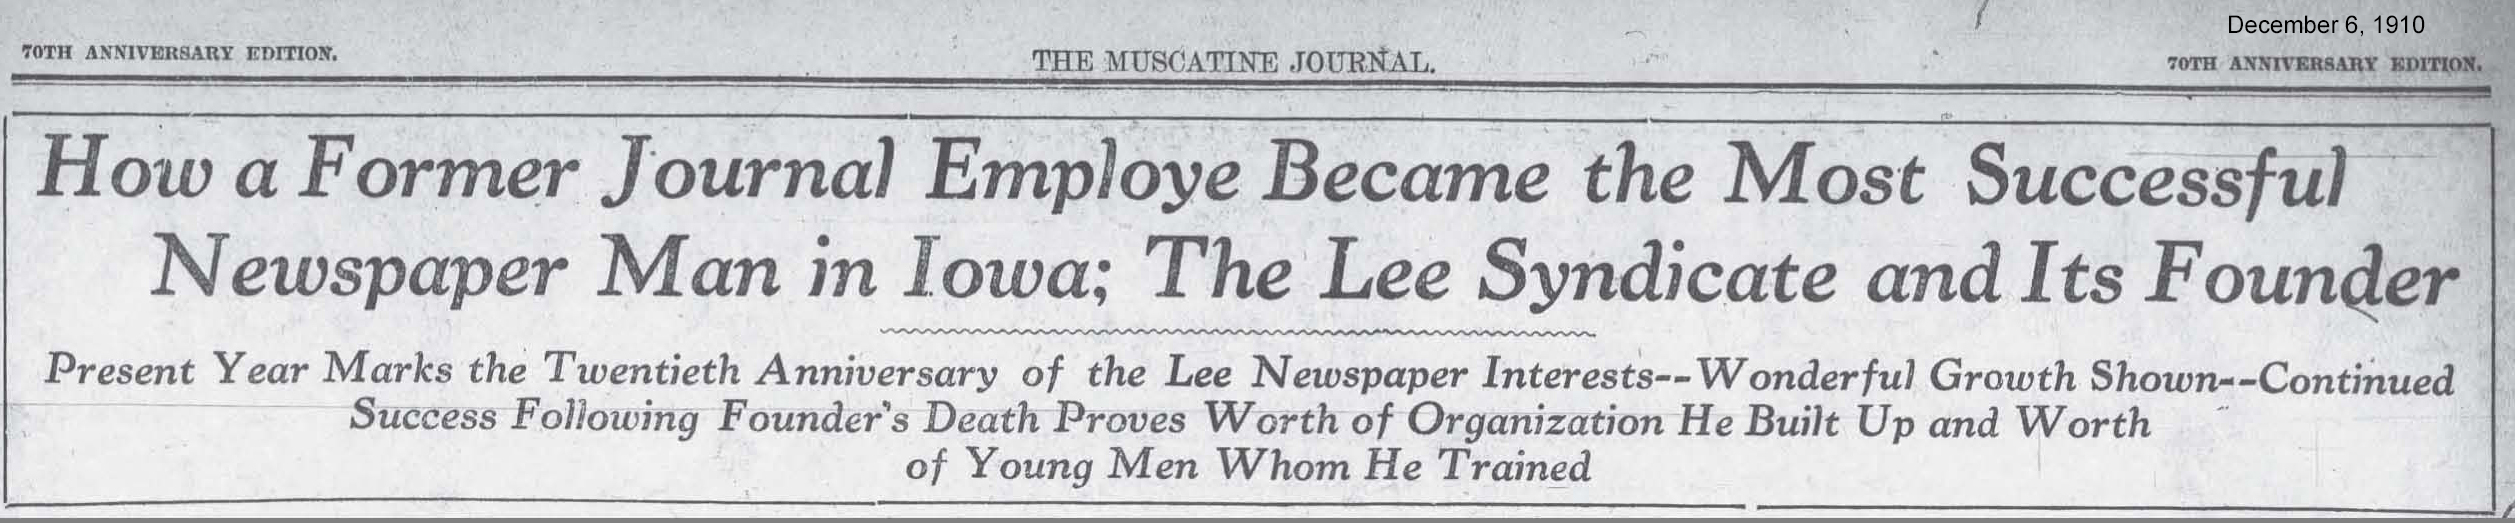 12-06-1910 muscatine journal